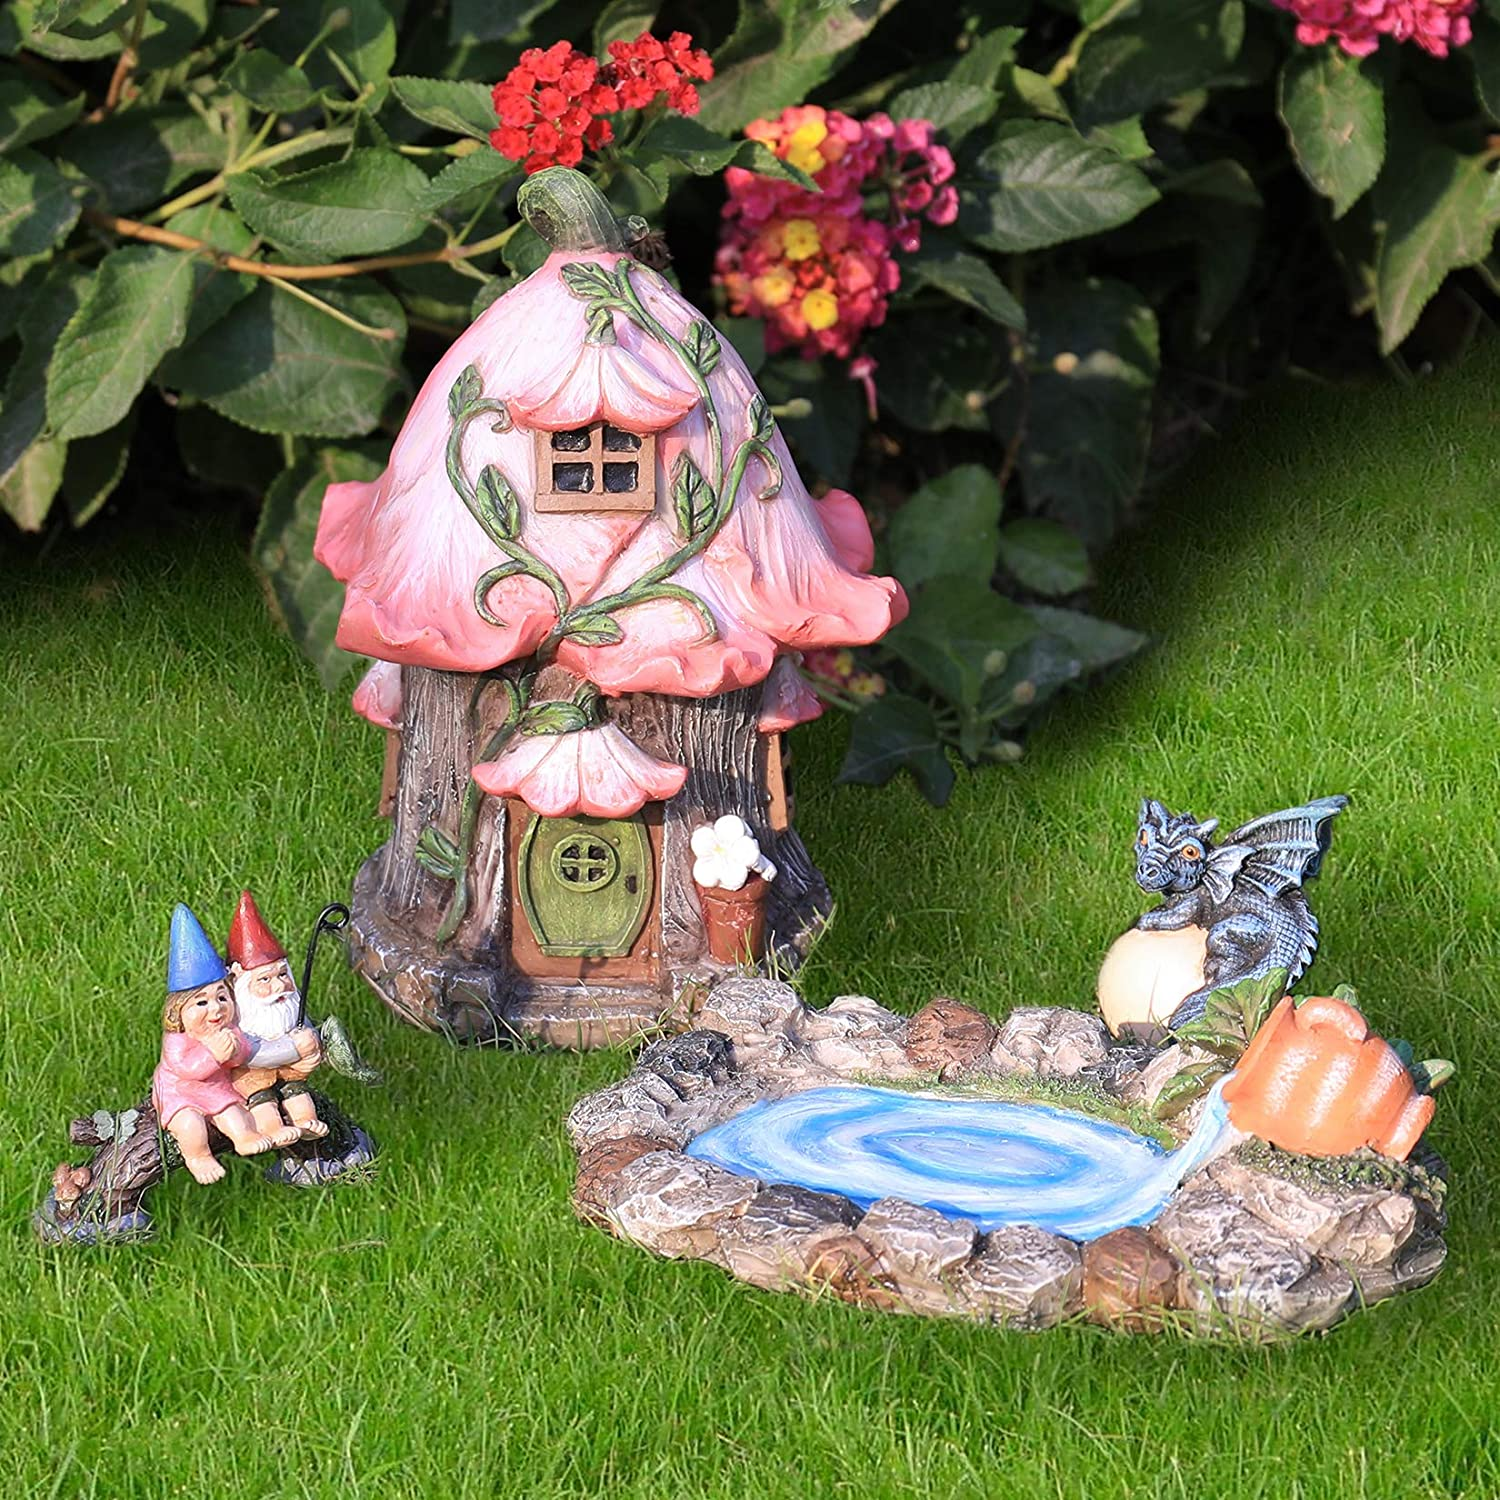 LA JOLIE MUSE Fairy Garden Gnome Accessories Kit - Hand Painted Miniature Fairy House Dragon Figurine Set of 4 pcs, Indoor & Outdoor Christmas Ornaments Gifts for Girls Boys Adults